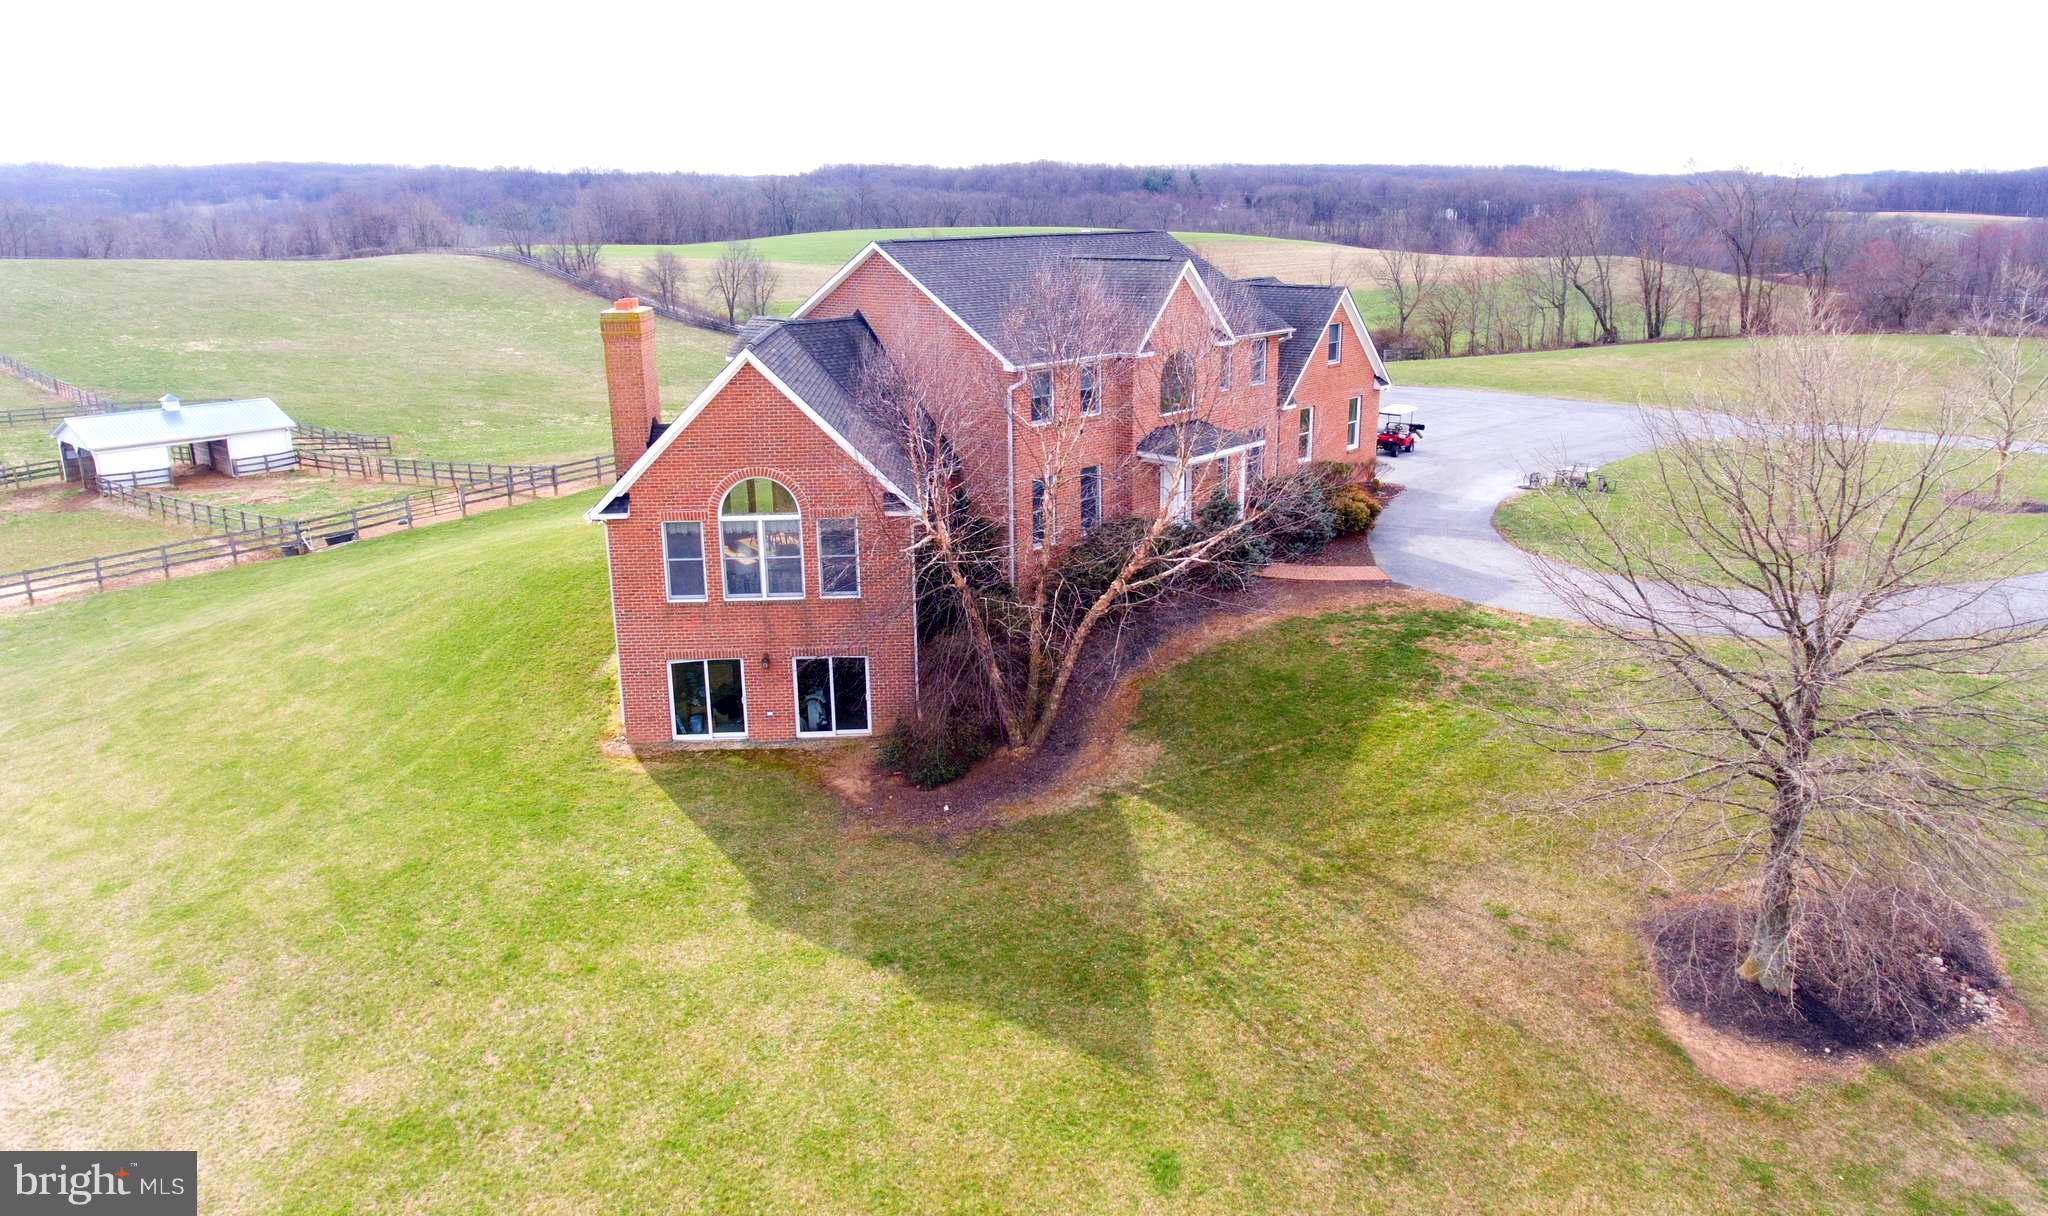 8950 ALBAUGH ROAD, MOUNT AIRY, MD 21771